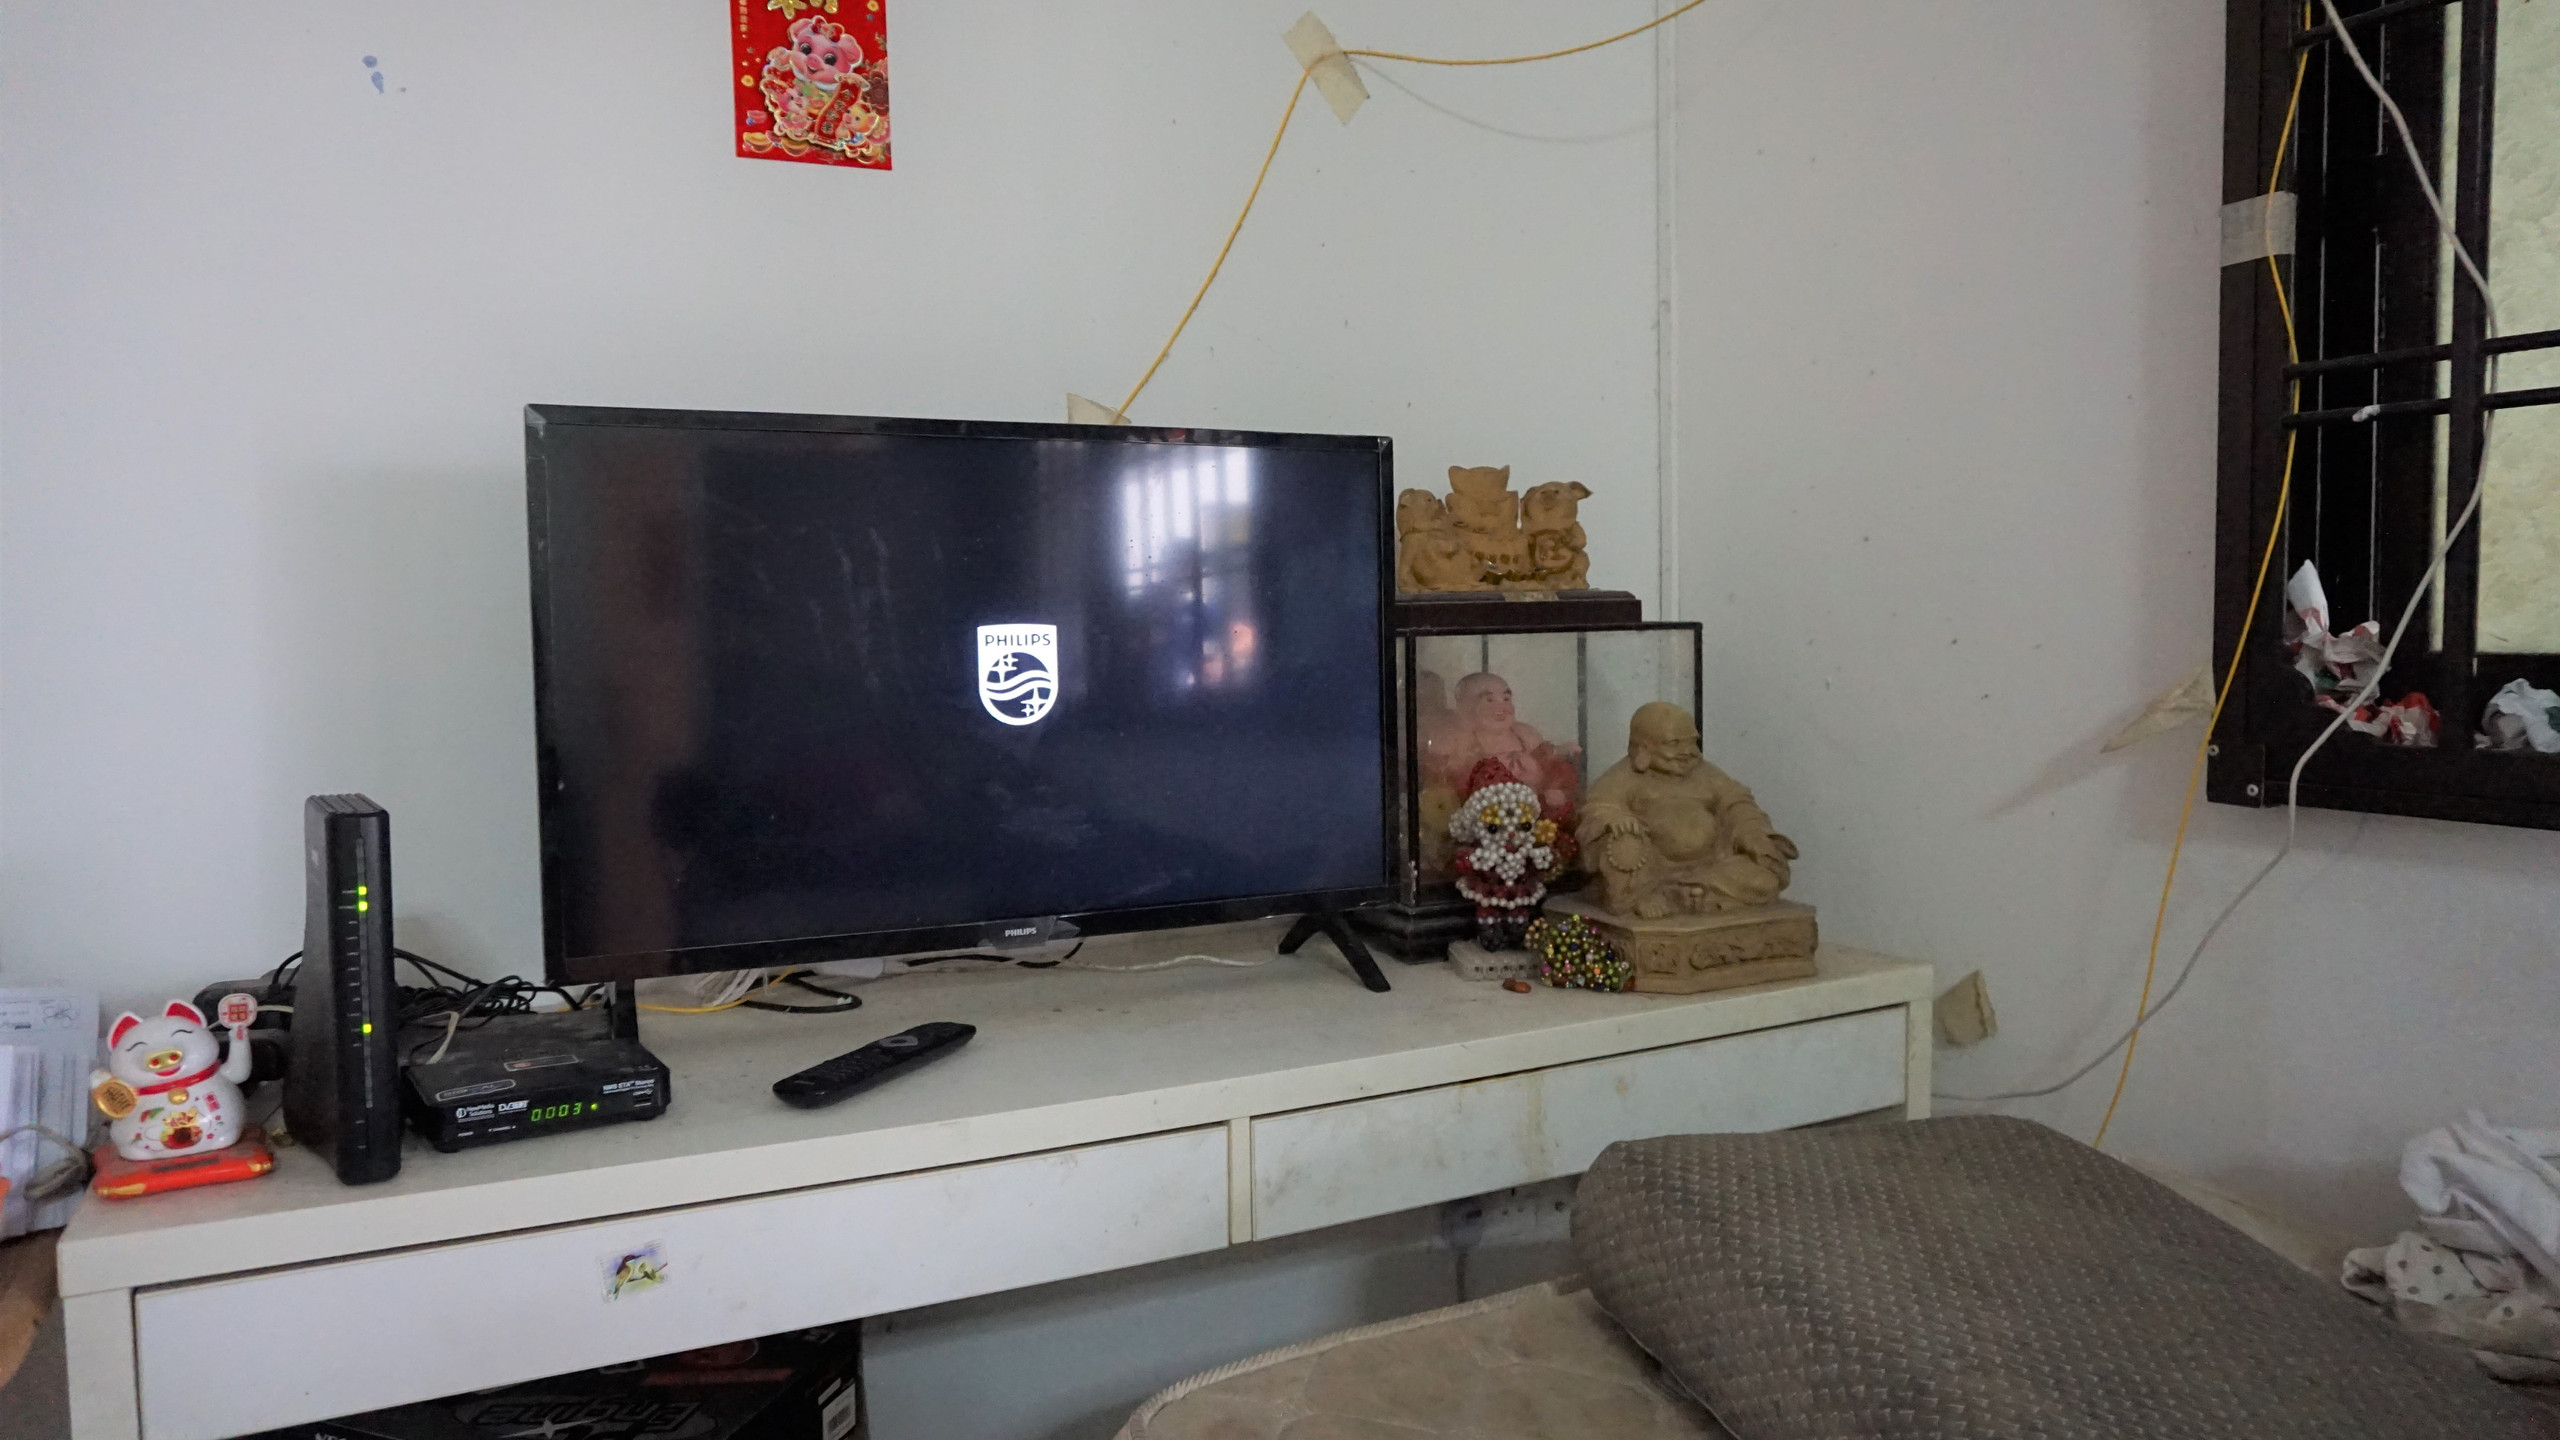 New TV bought by Mdm Kng